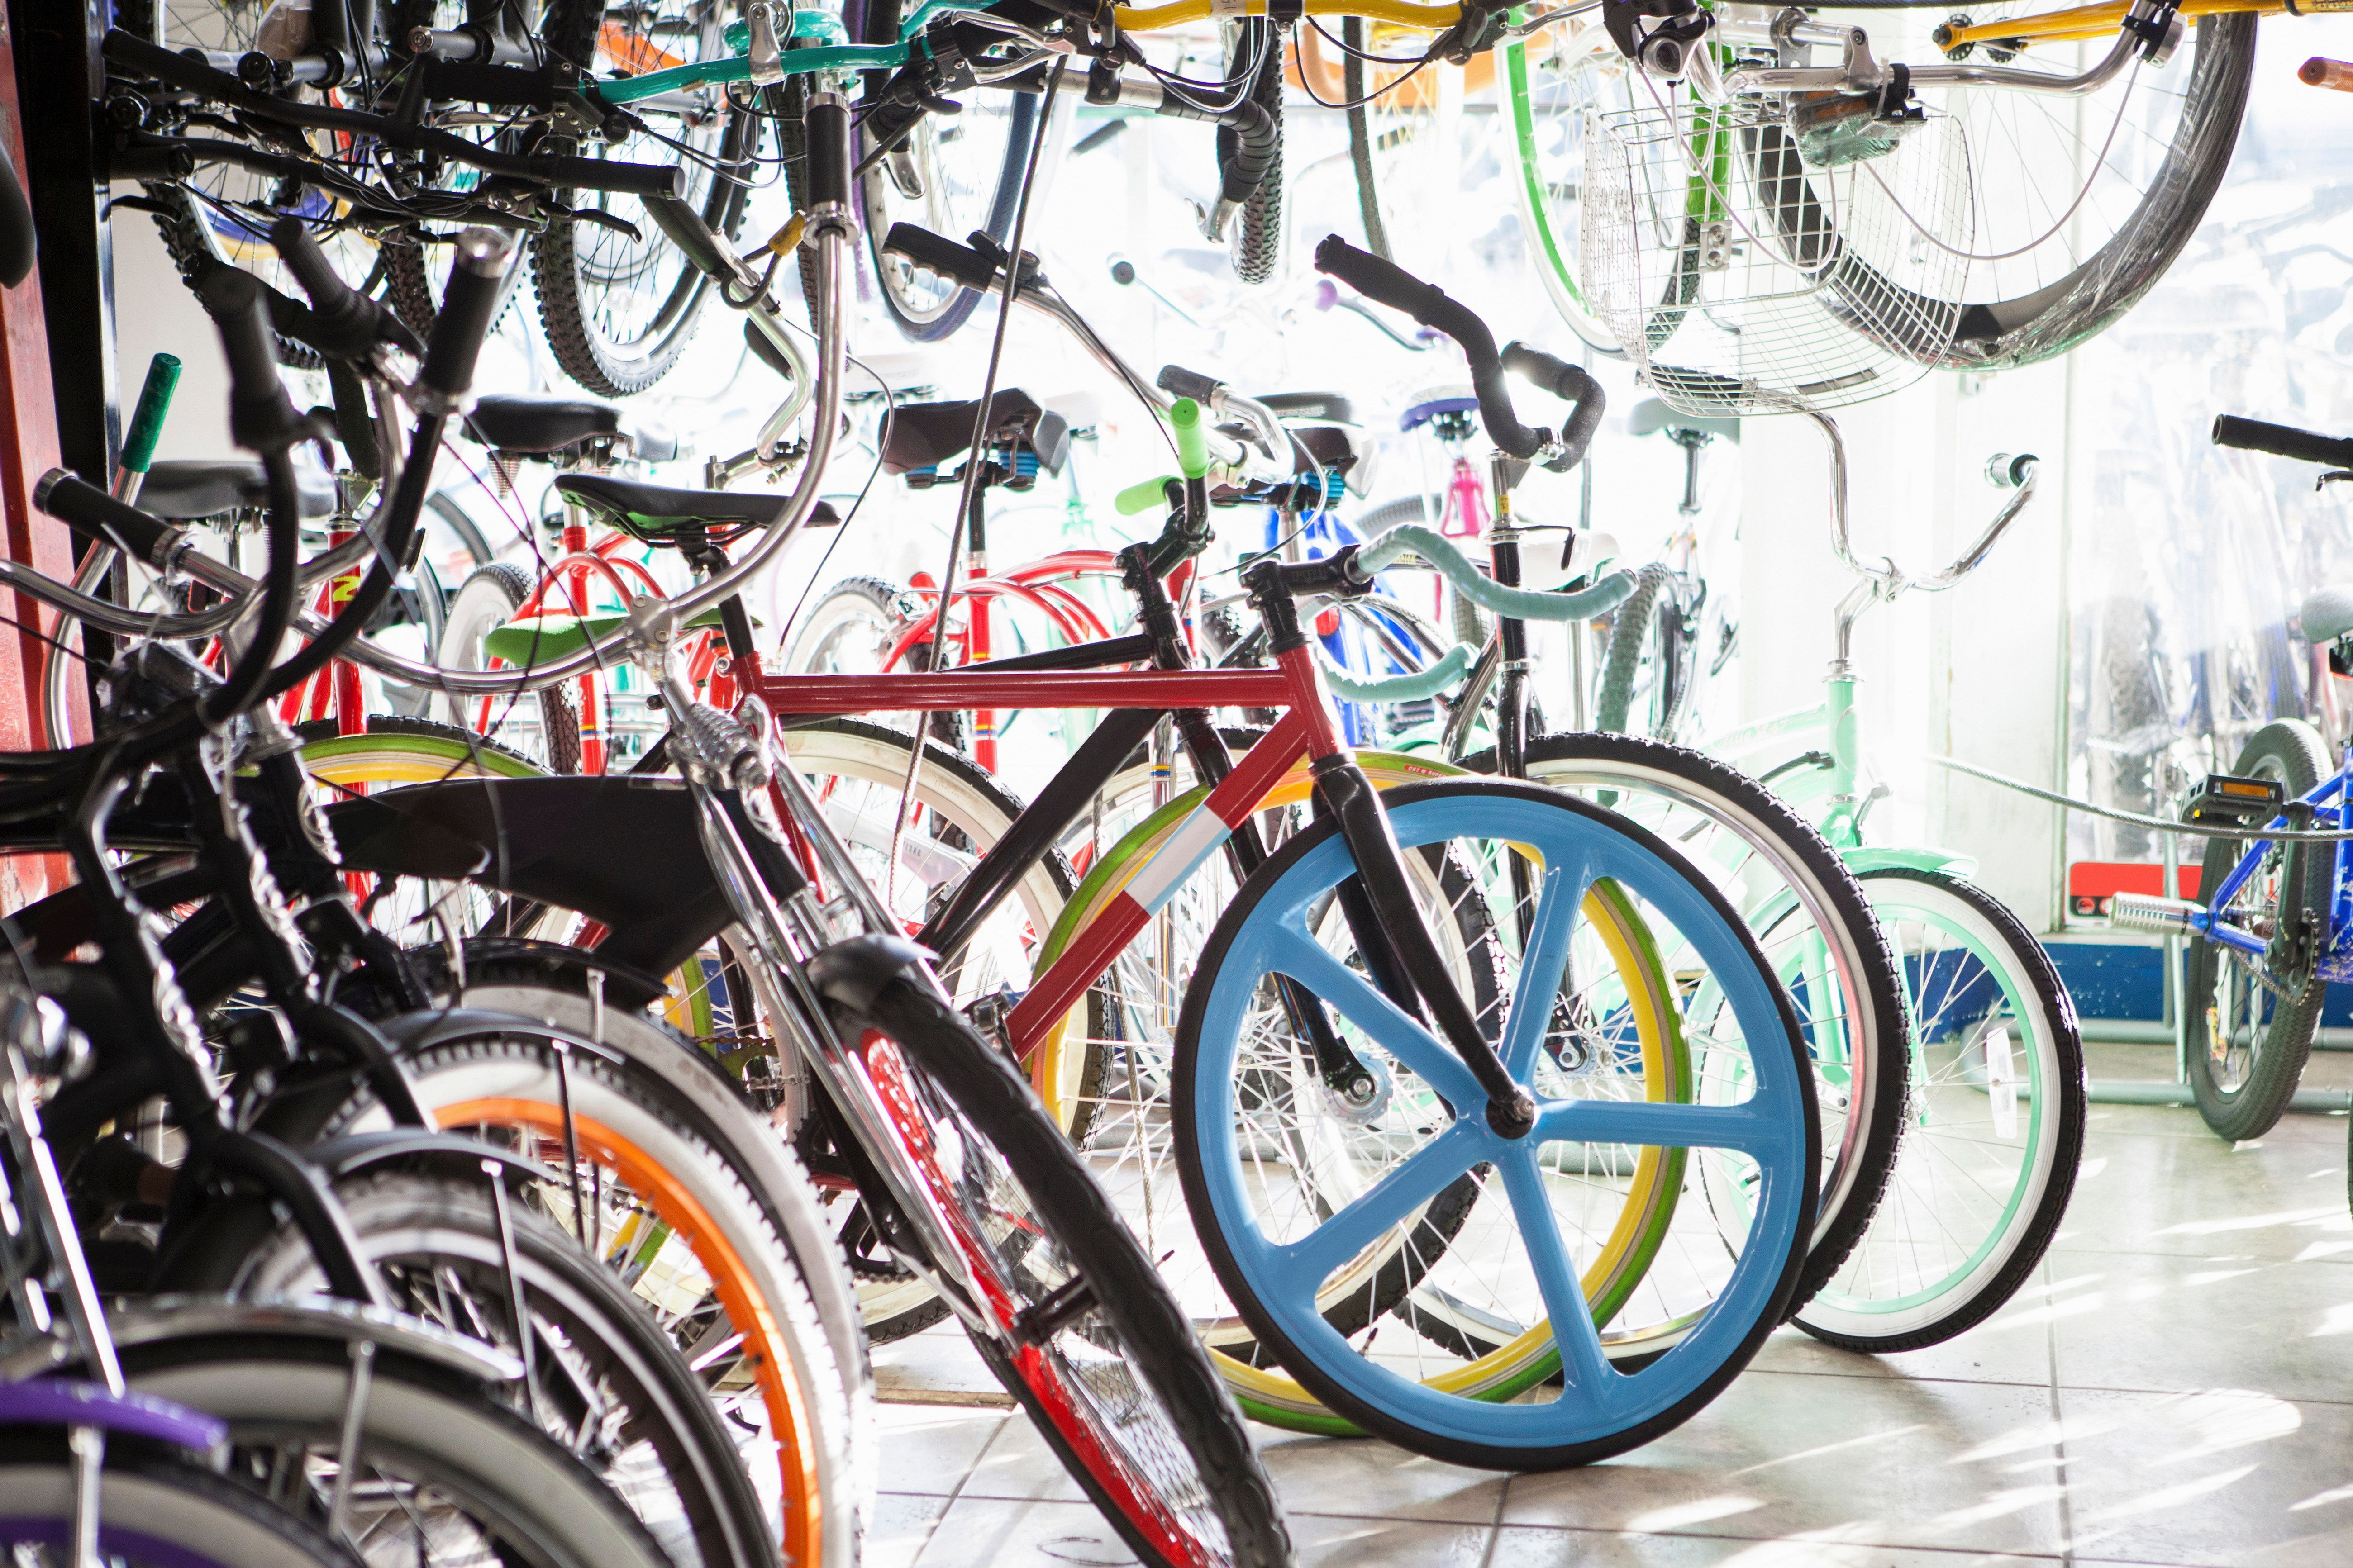 Bicycles for sale in shop